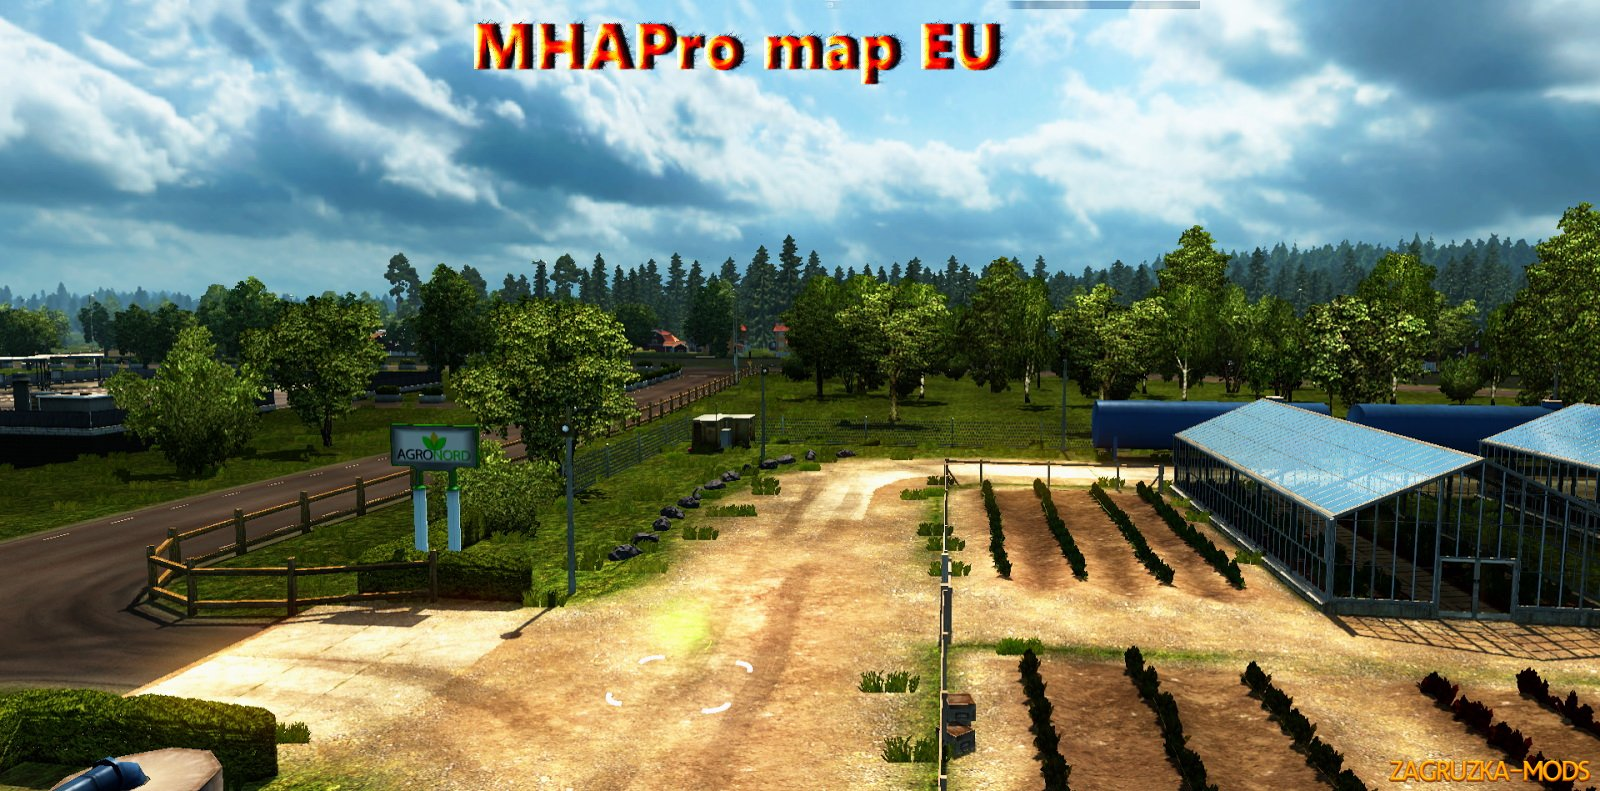 MHAPro Map Eu v2.1 by MsHeavyAlex for ETS 2